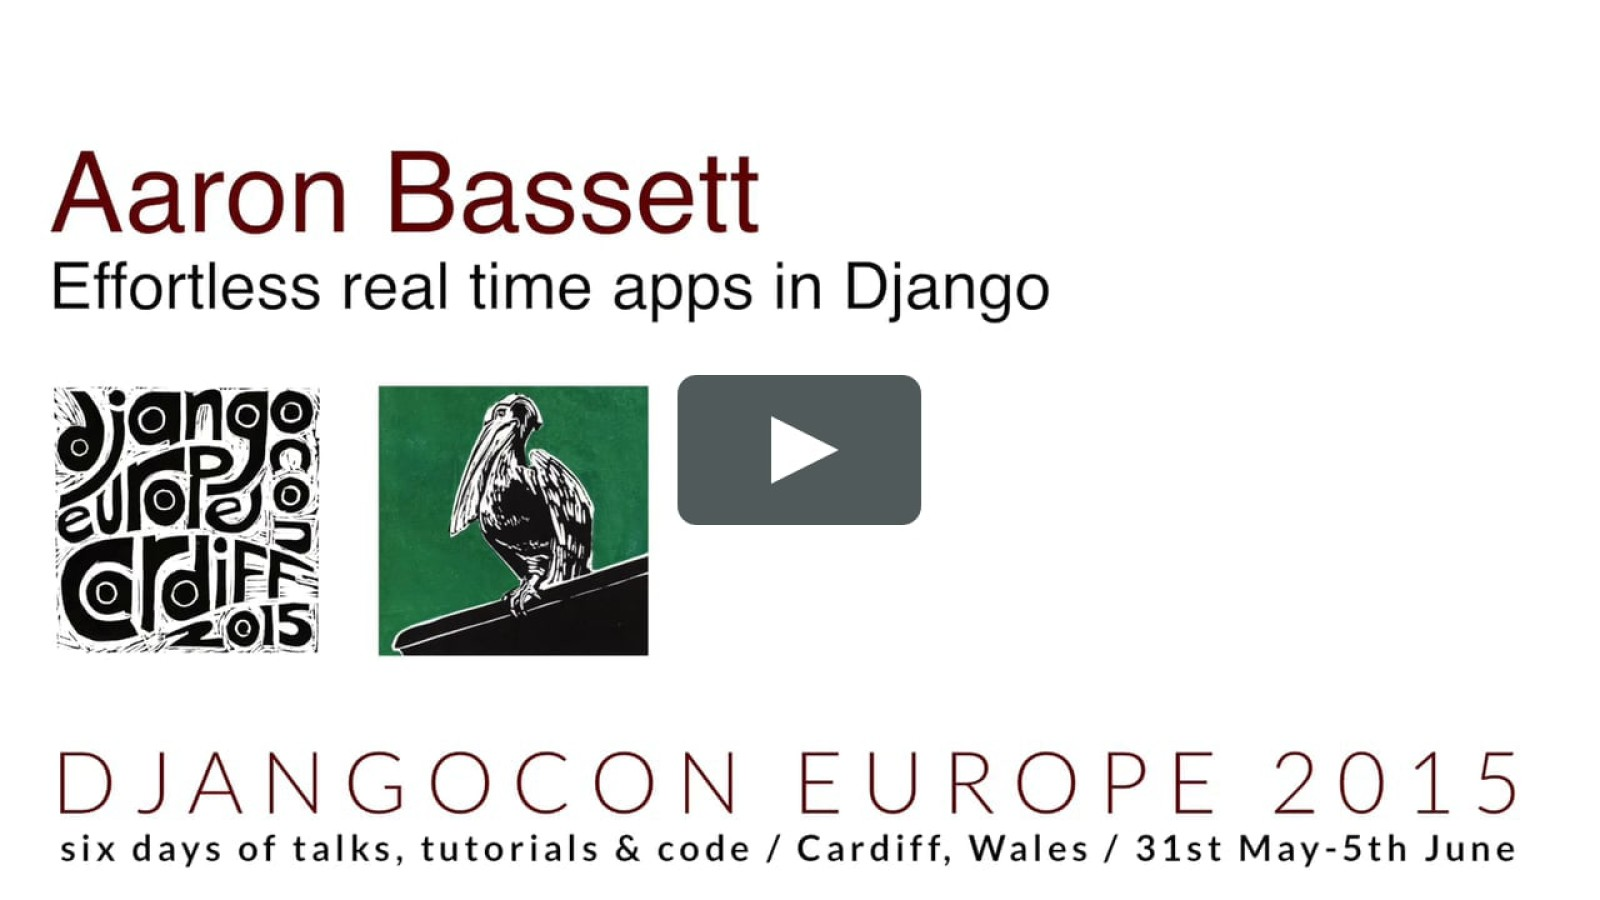 Effortless real time apps in Django